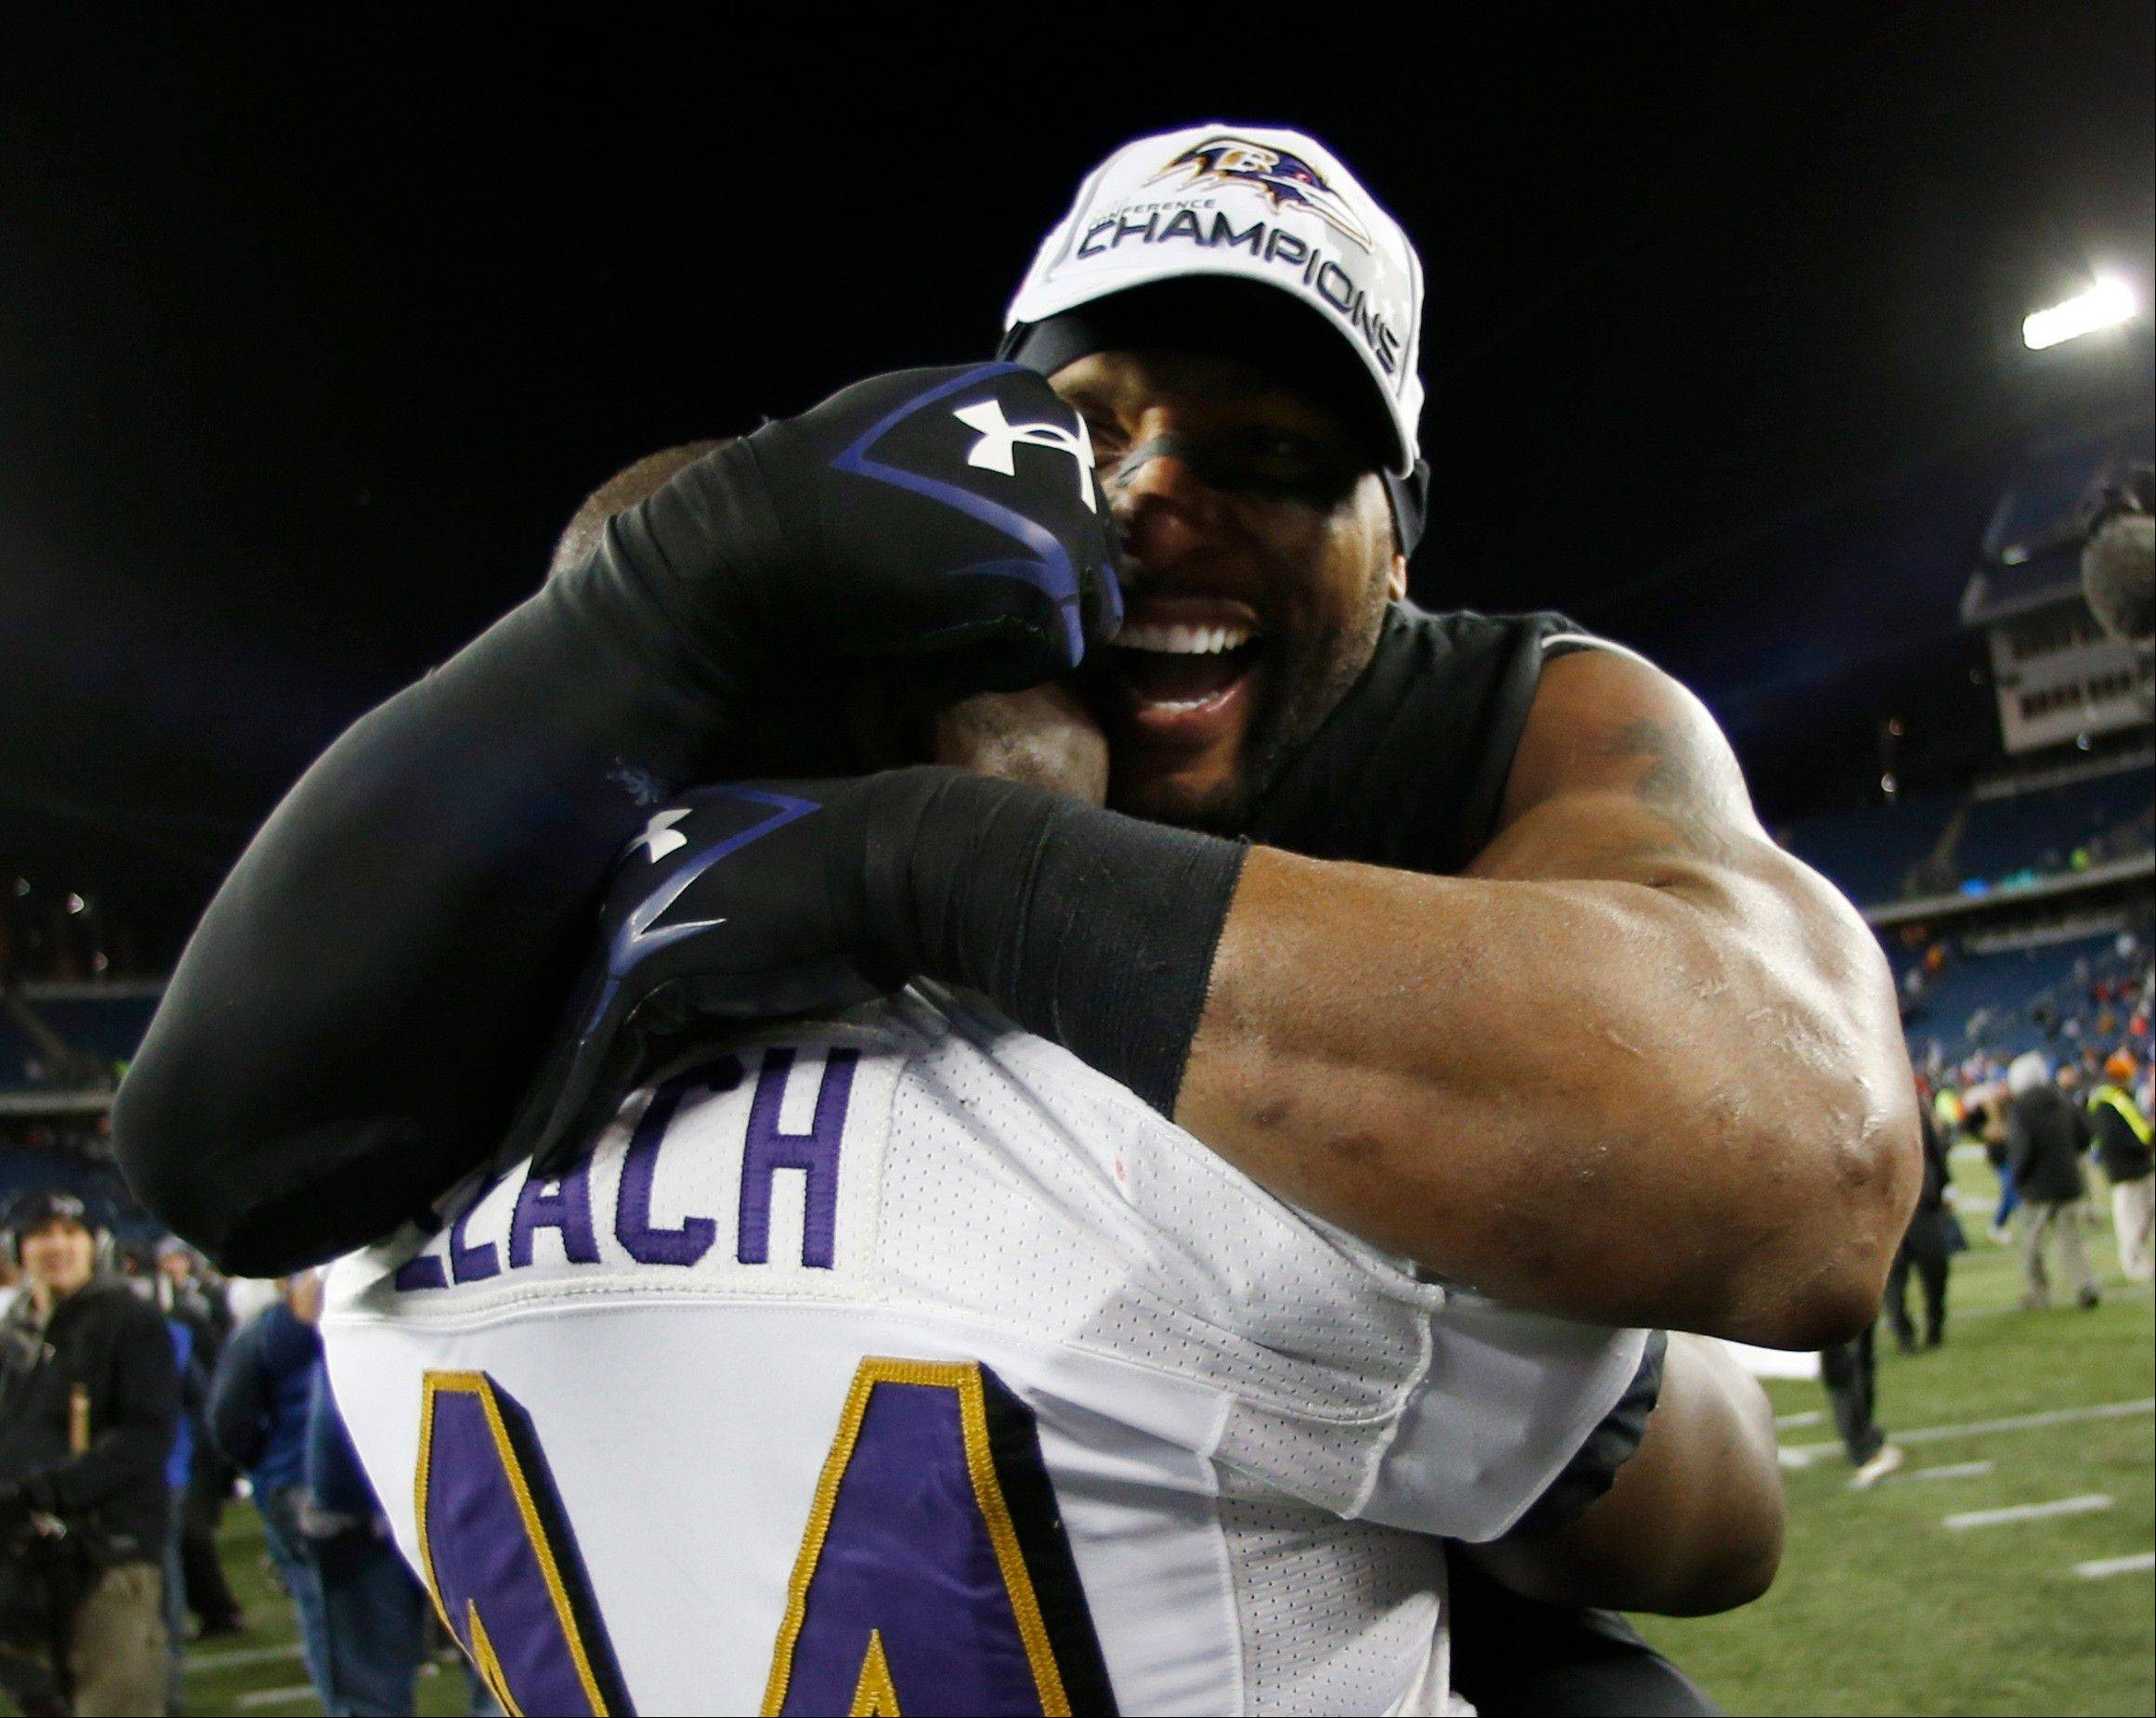 Baltimore Ravens inside linebacker Ray Lewis, right, celebrates with Vonta Leach (44) after the NFL football AFC Championship football game against the New England Patriots in Foxborough, Mass., Sunday, Jan. 20, 2013. The Ravens defeated the Patriots 28-13 to advance to Super Bowl XLVII.